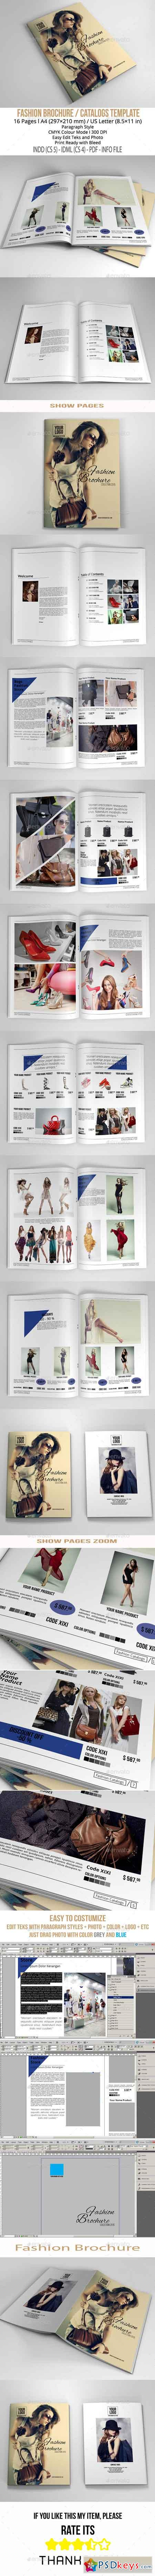 Fashion Brochure A4 US Letter 11104898